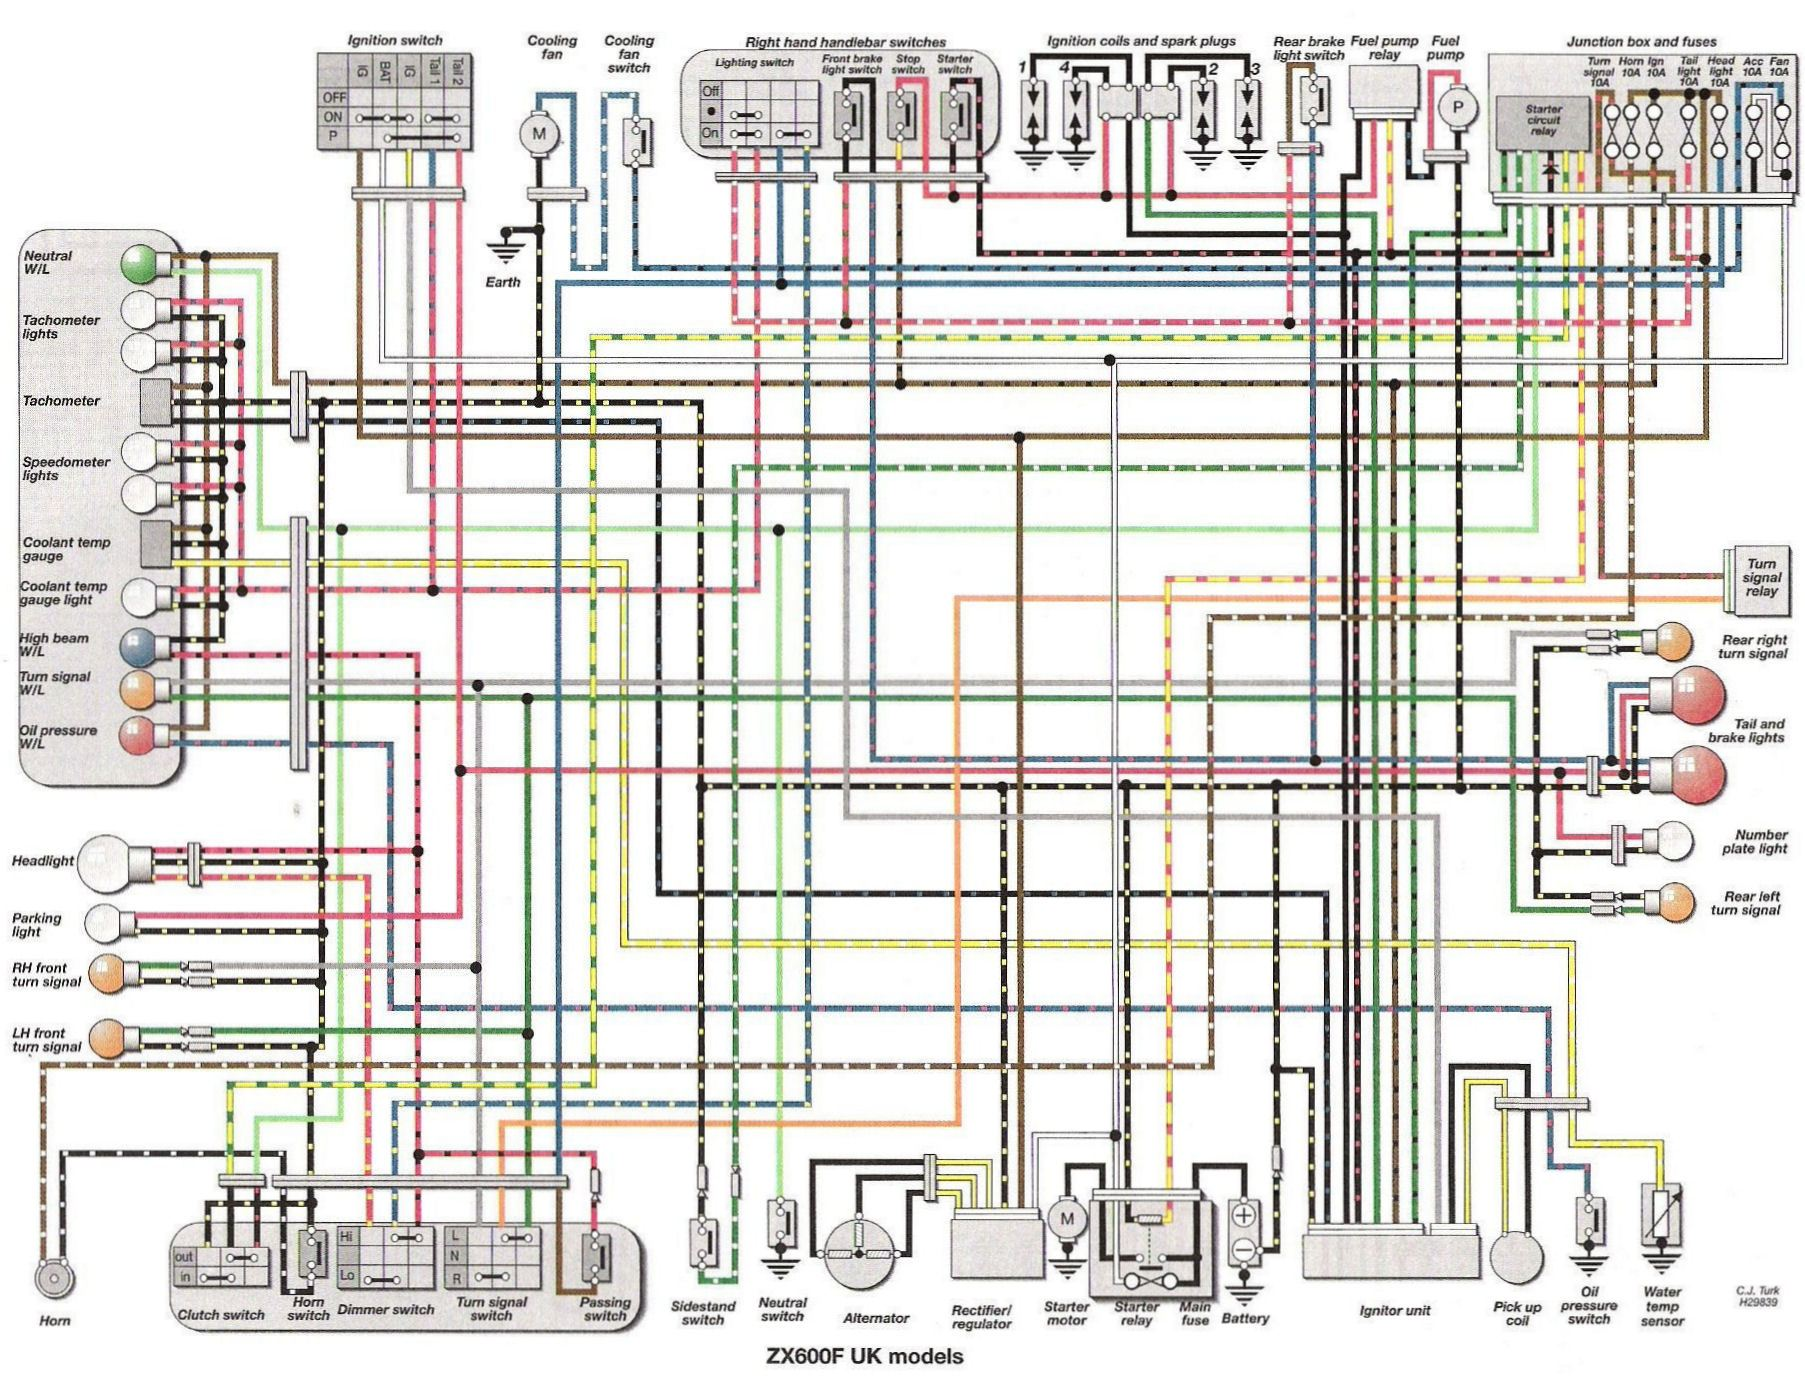 ow_3997] zx7 wiring diagram free download wiring diagram schematic download  diagram  vell usnes kweca tran vira favo mohammedshrine librar wiring 101